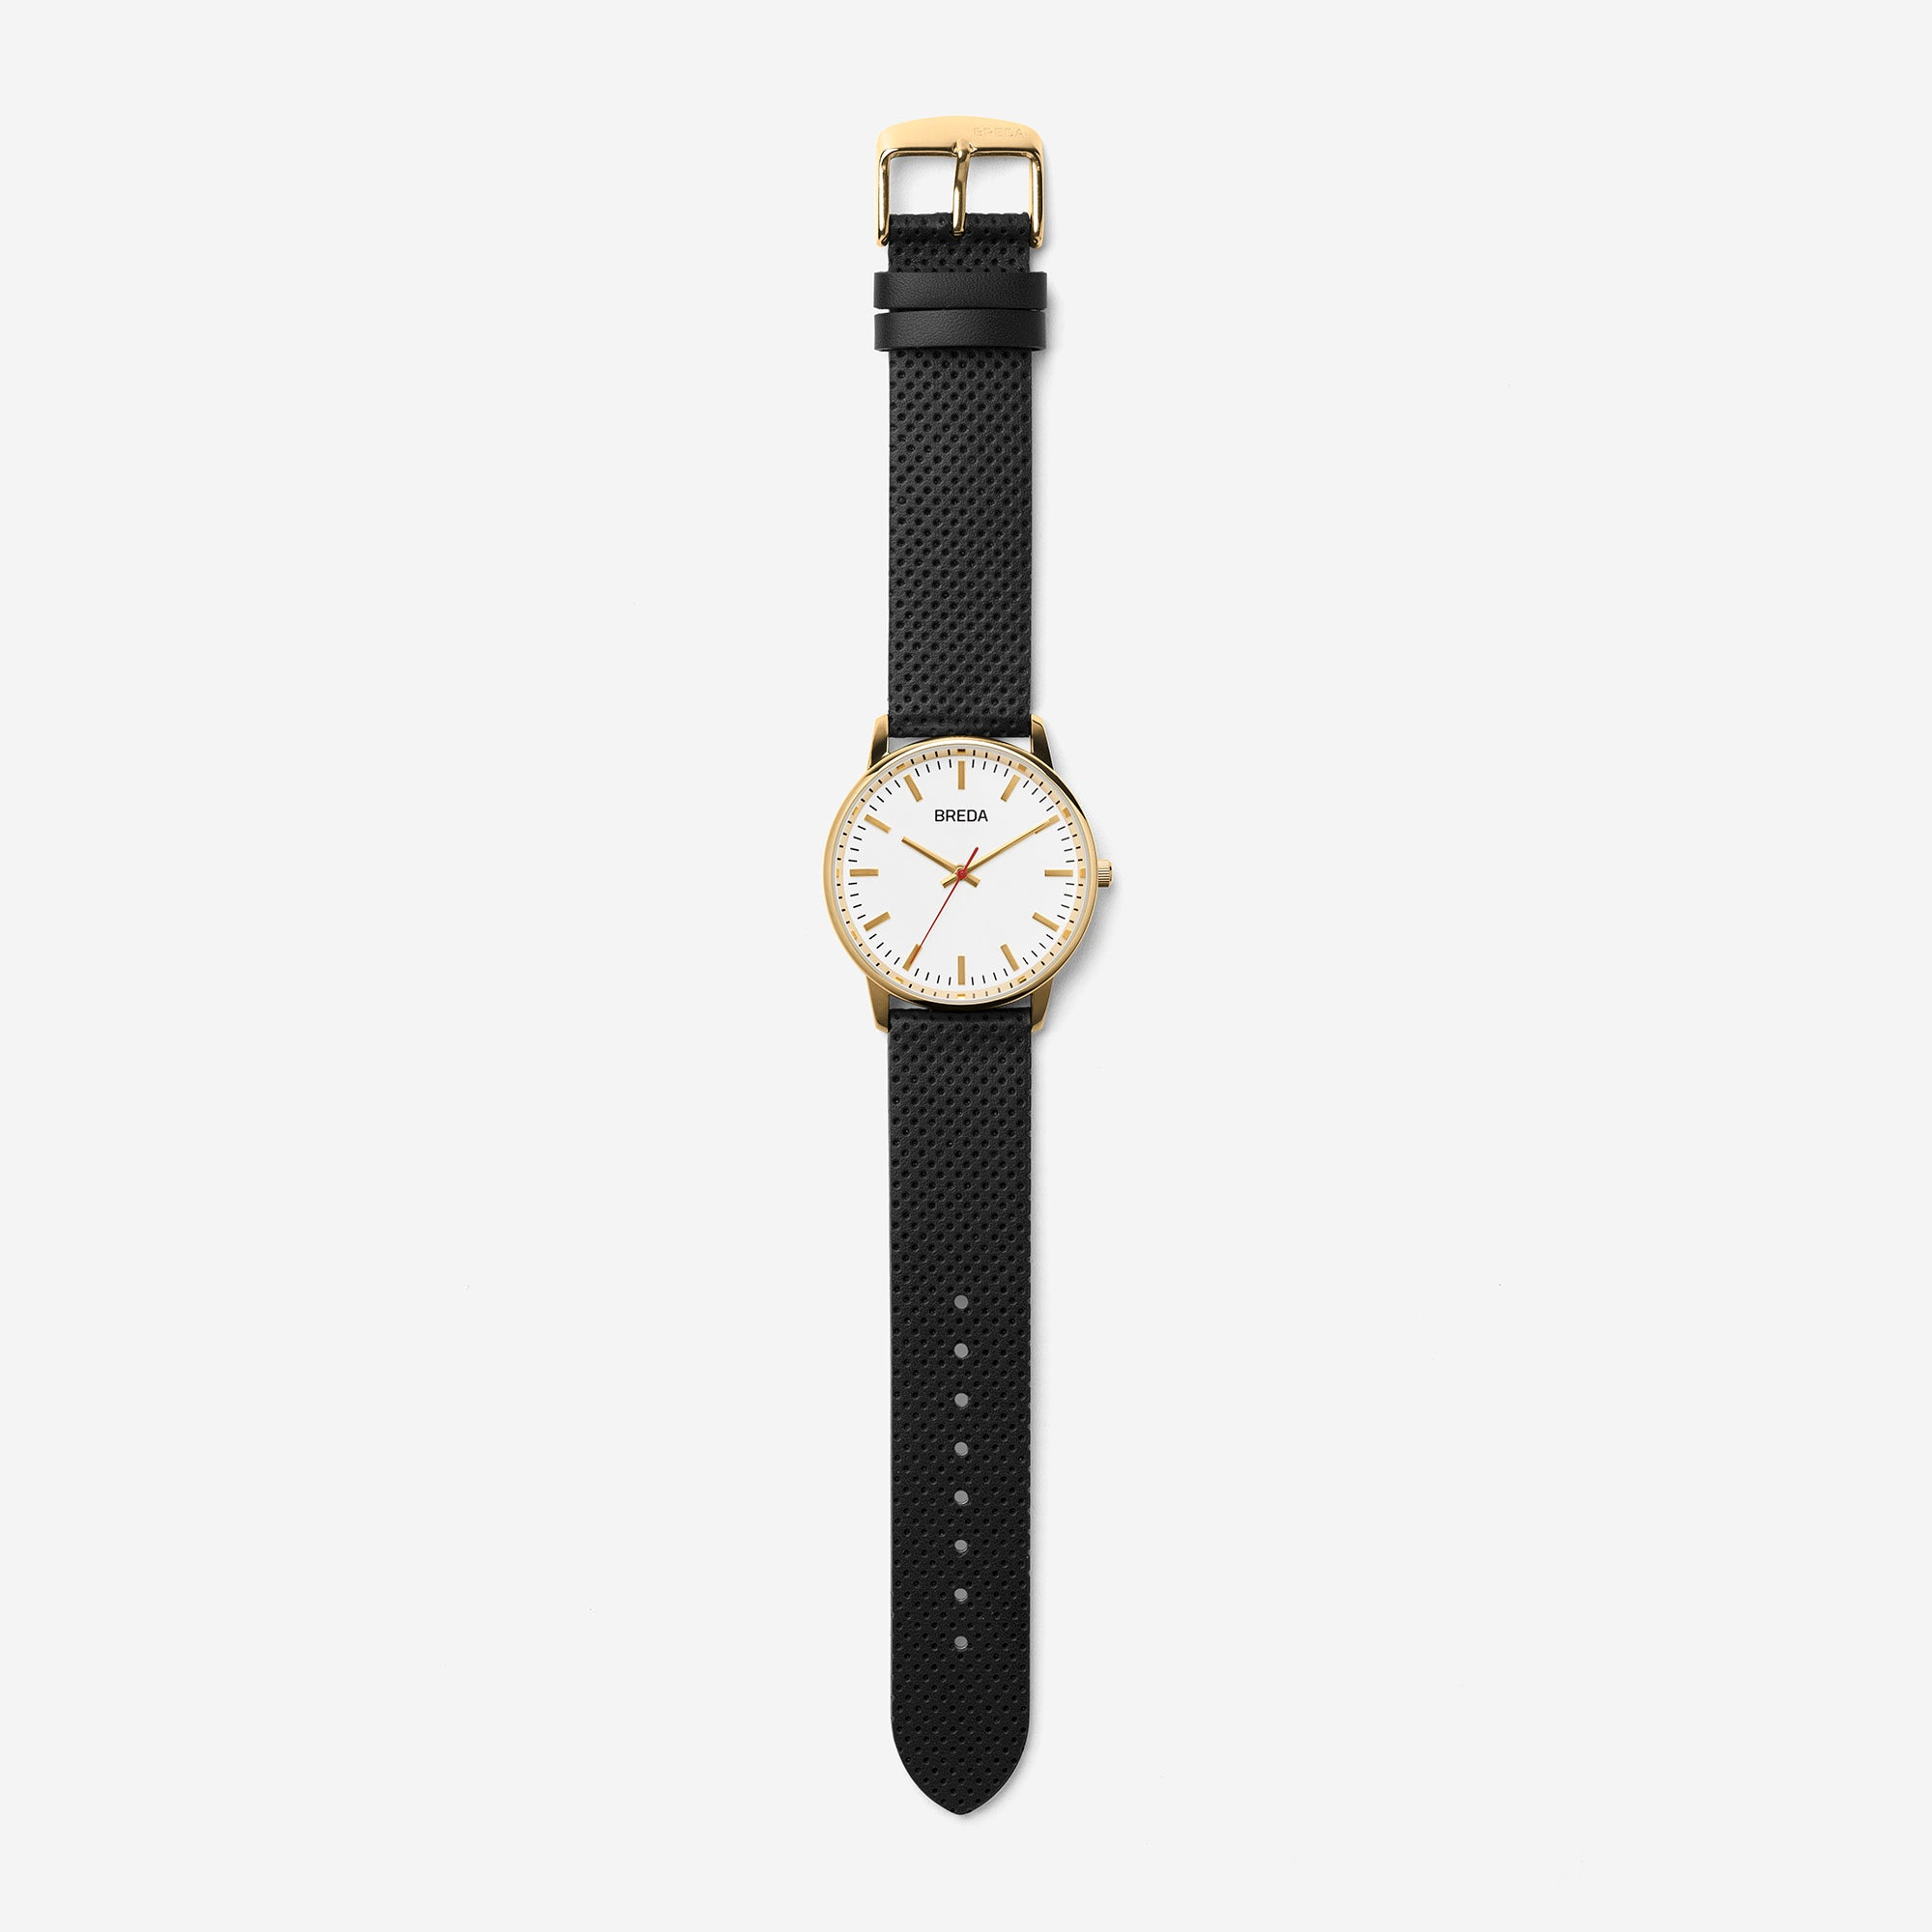 //cdn.shopify.com/s/files/1/0879/6650/products/breda-zapf-1725a-gold-black-leather-watch-long_19d4edff-005e-4904-a326-b63f586d88b8_1024x1024.jpg?v=1542818339